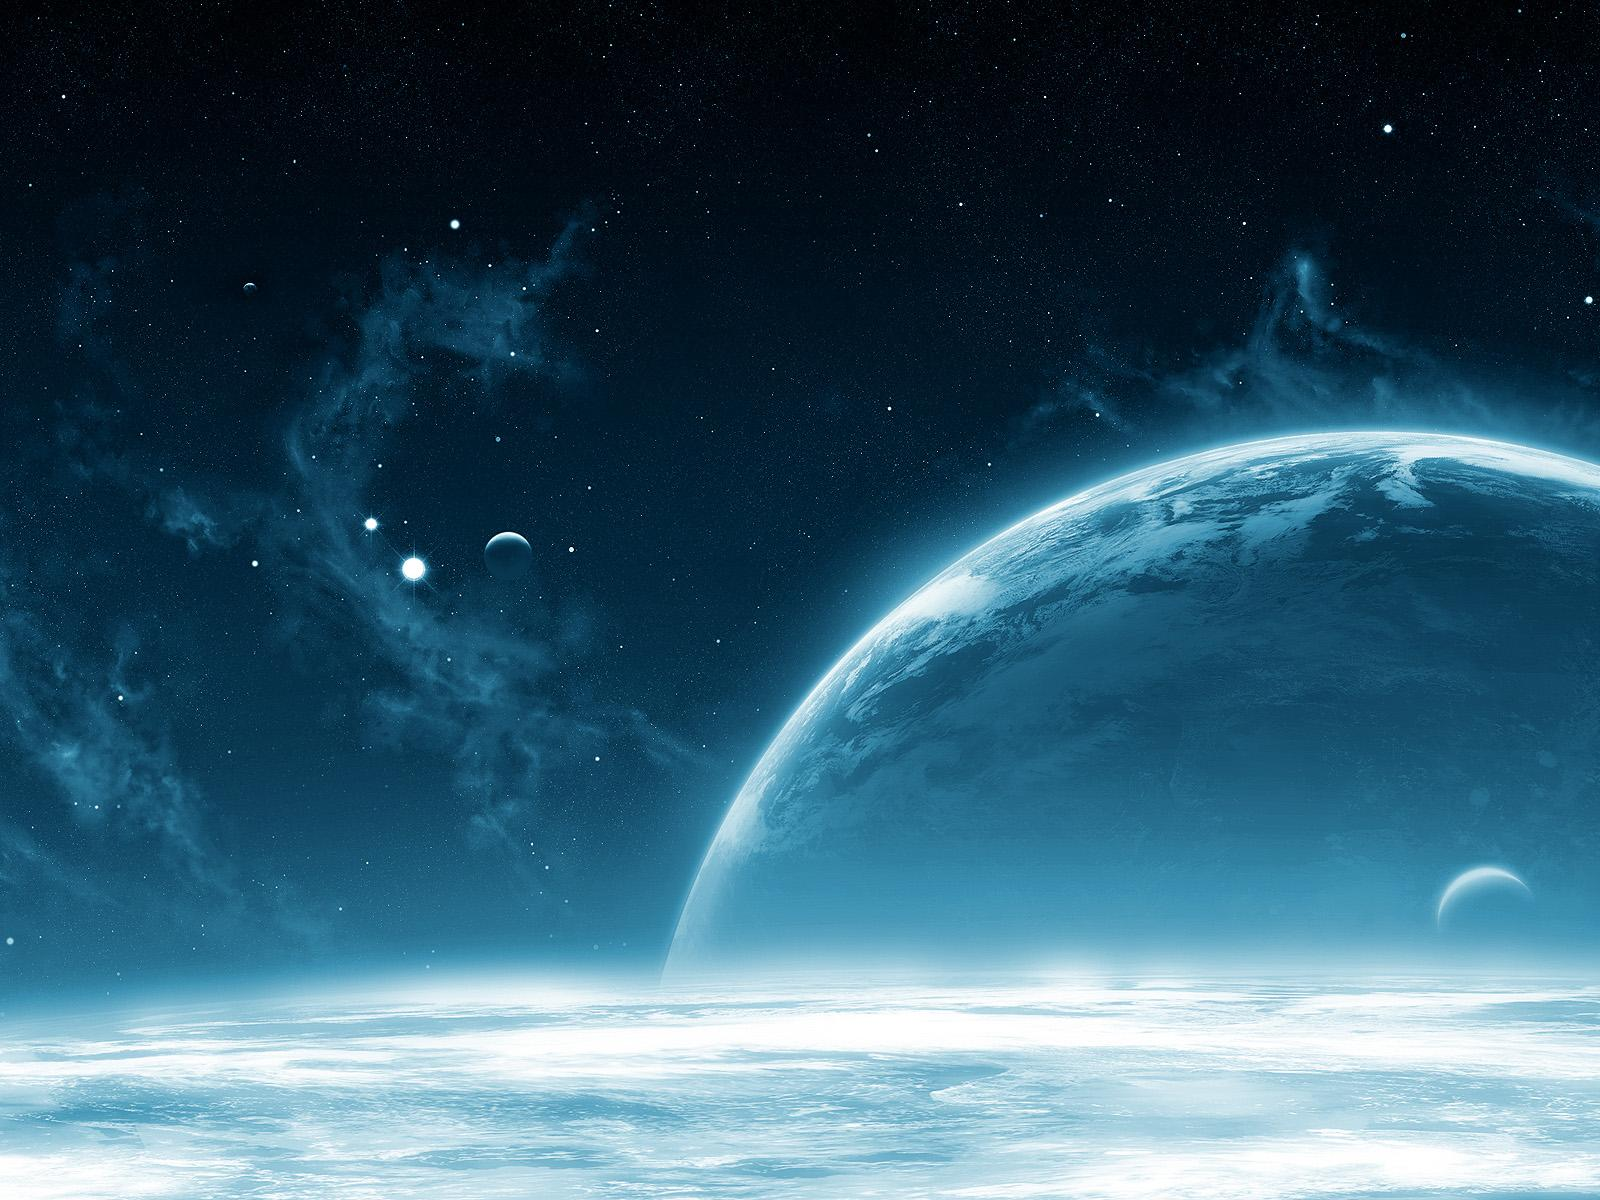 Epic Space Wallpaper Images & Pictures - Becuo